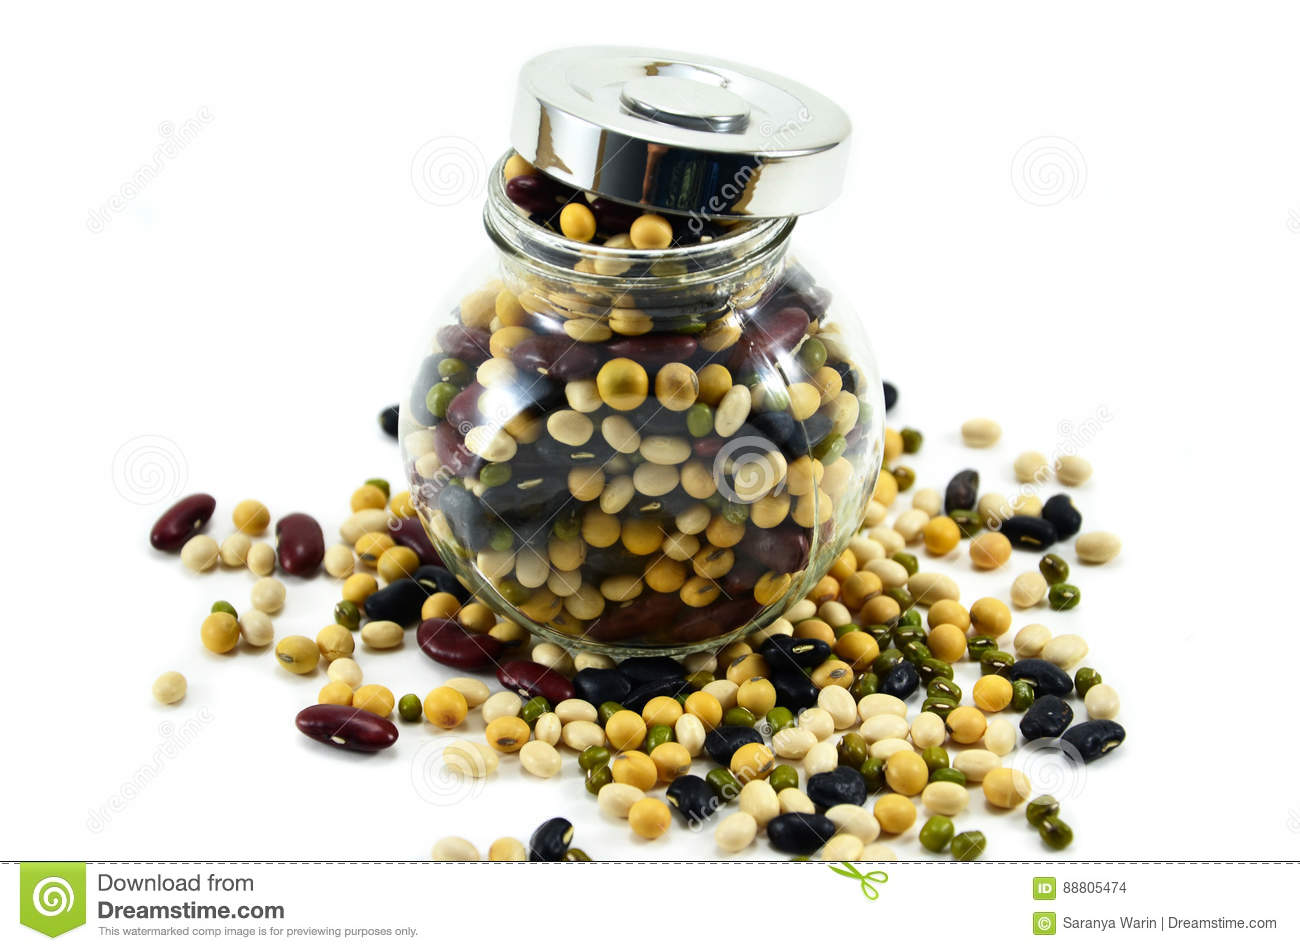 Many nuts overflow from the jar.